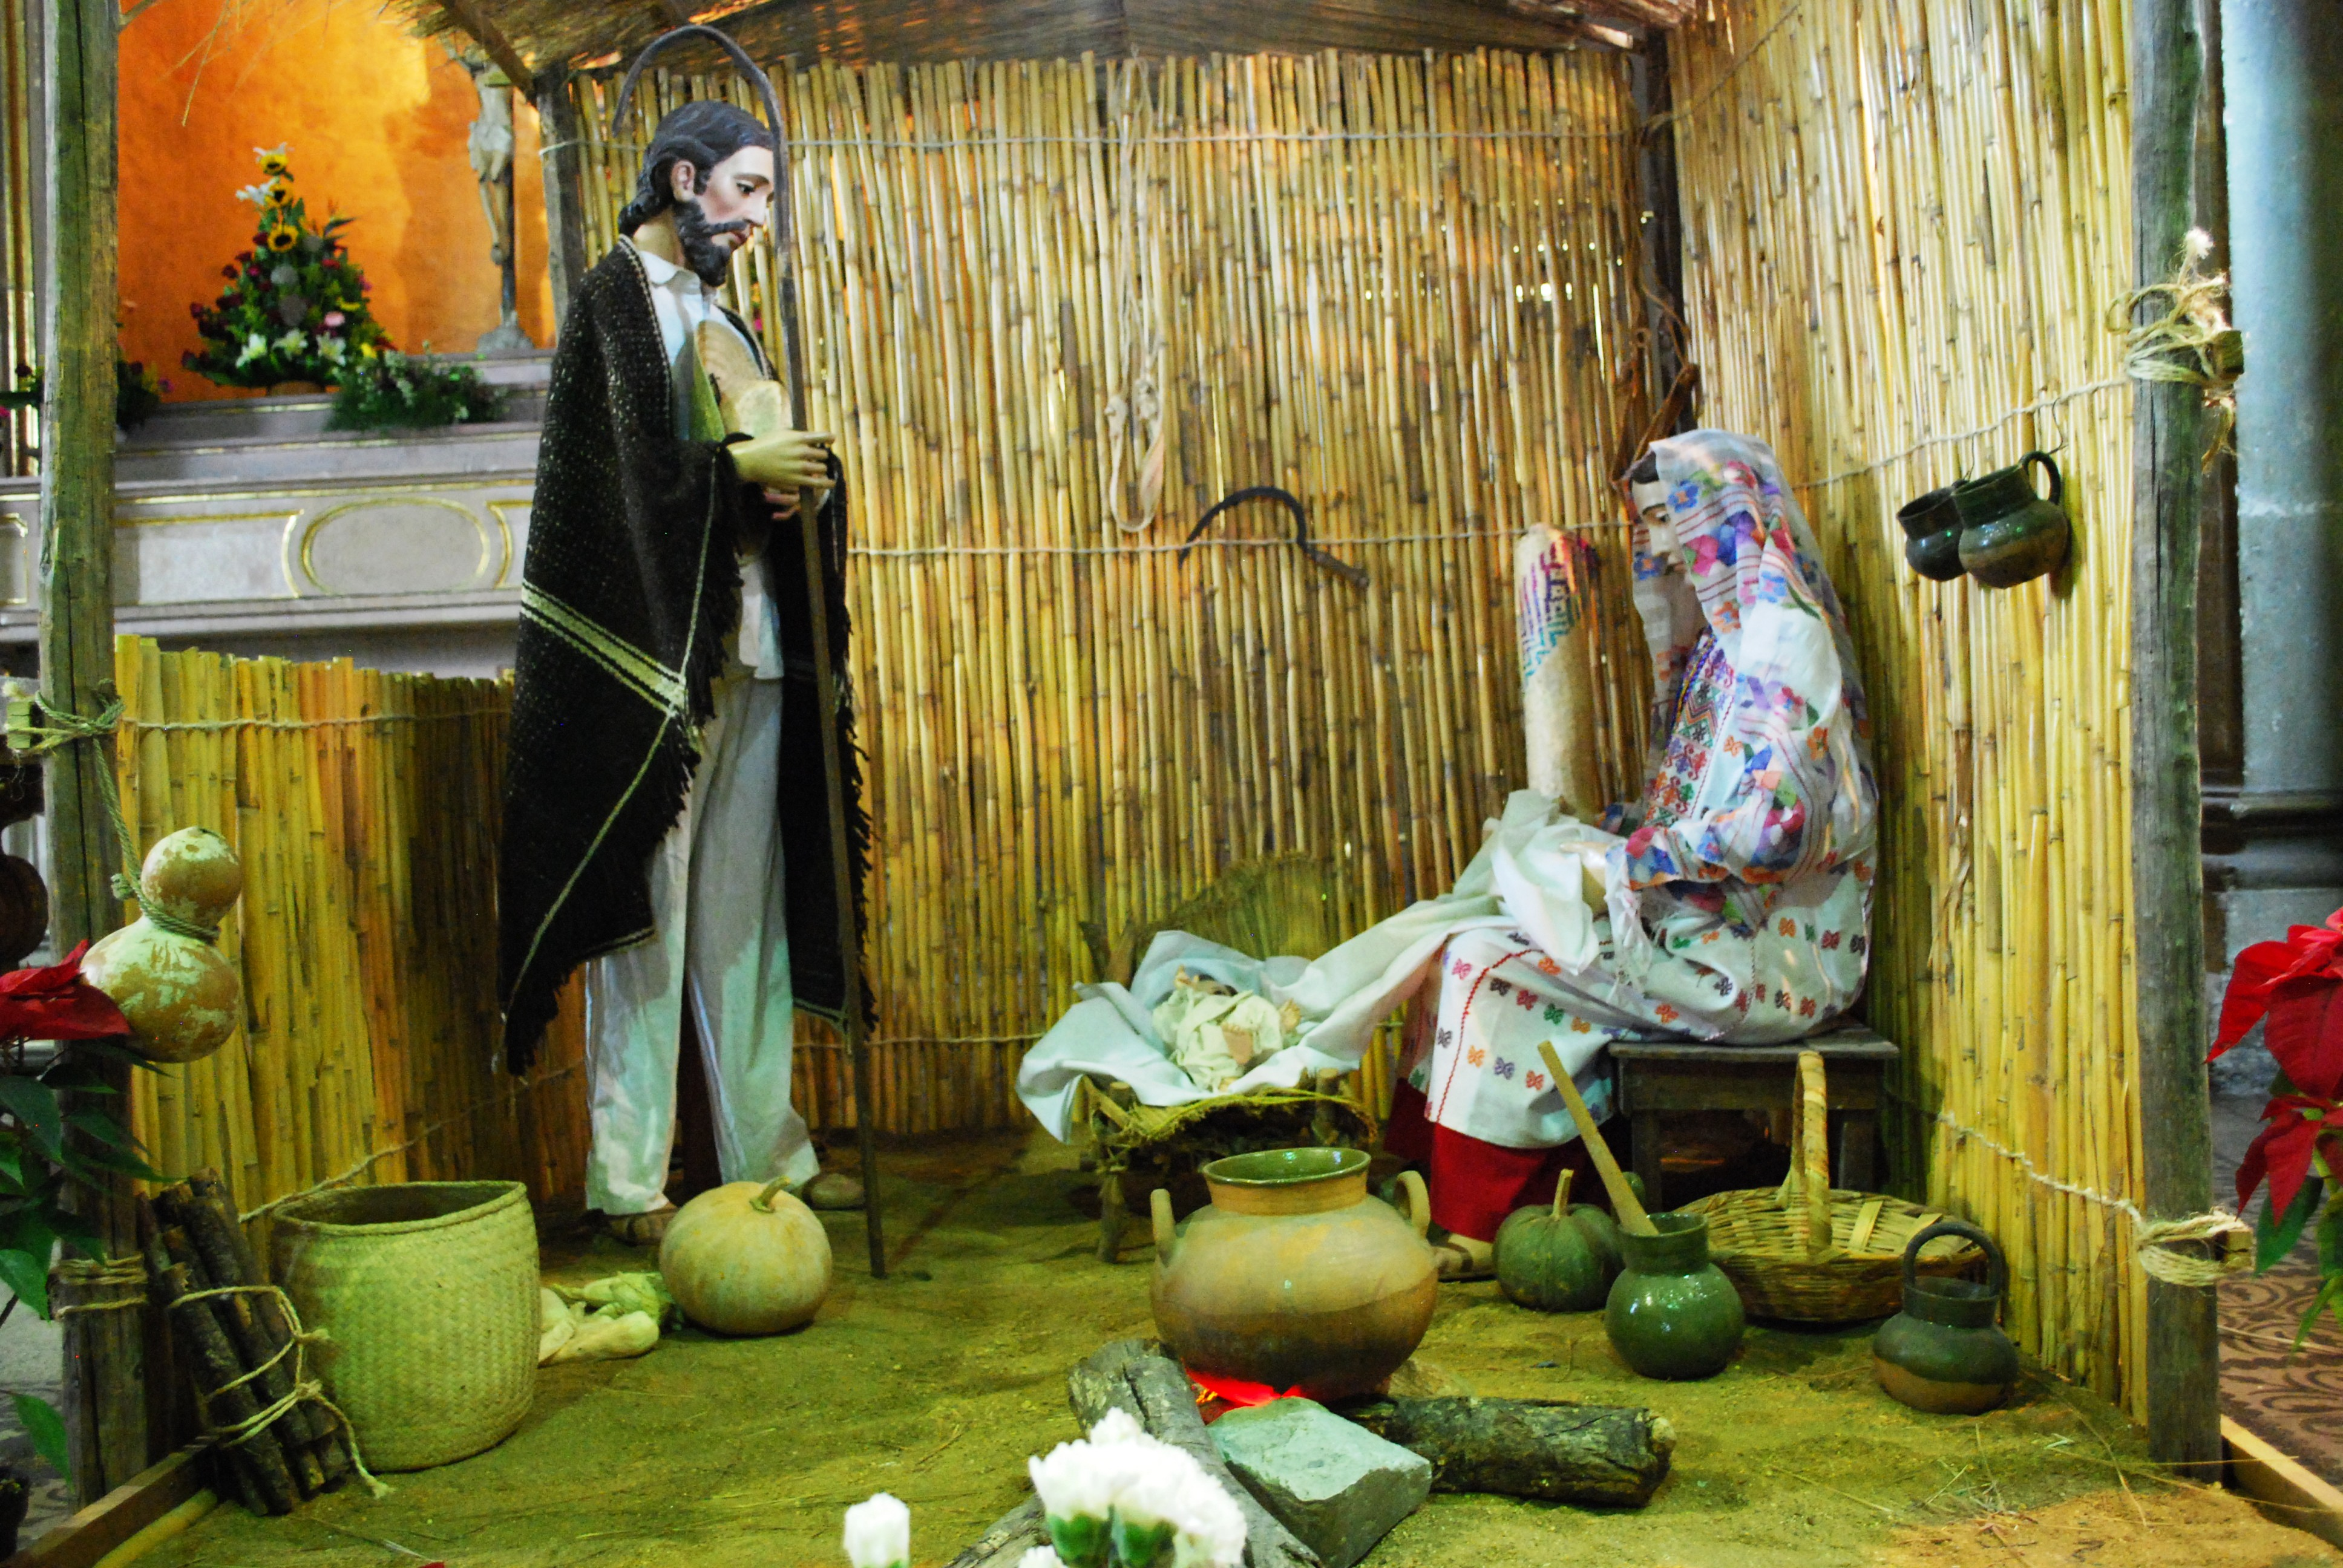 Part of a nativity scene from the Church of the Company of Jesus in the city of Oaxaca. Joseph and Mary are dressed in Oaxacan costume. Photo taken on December 25, 2009.